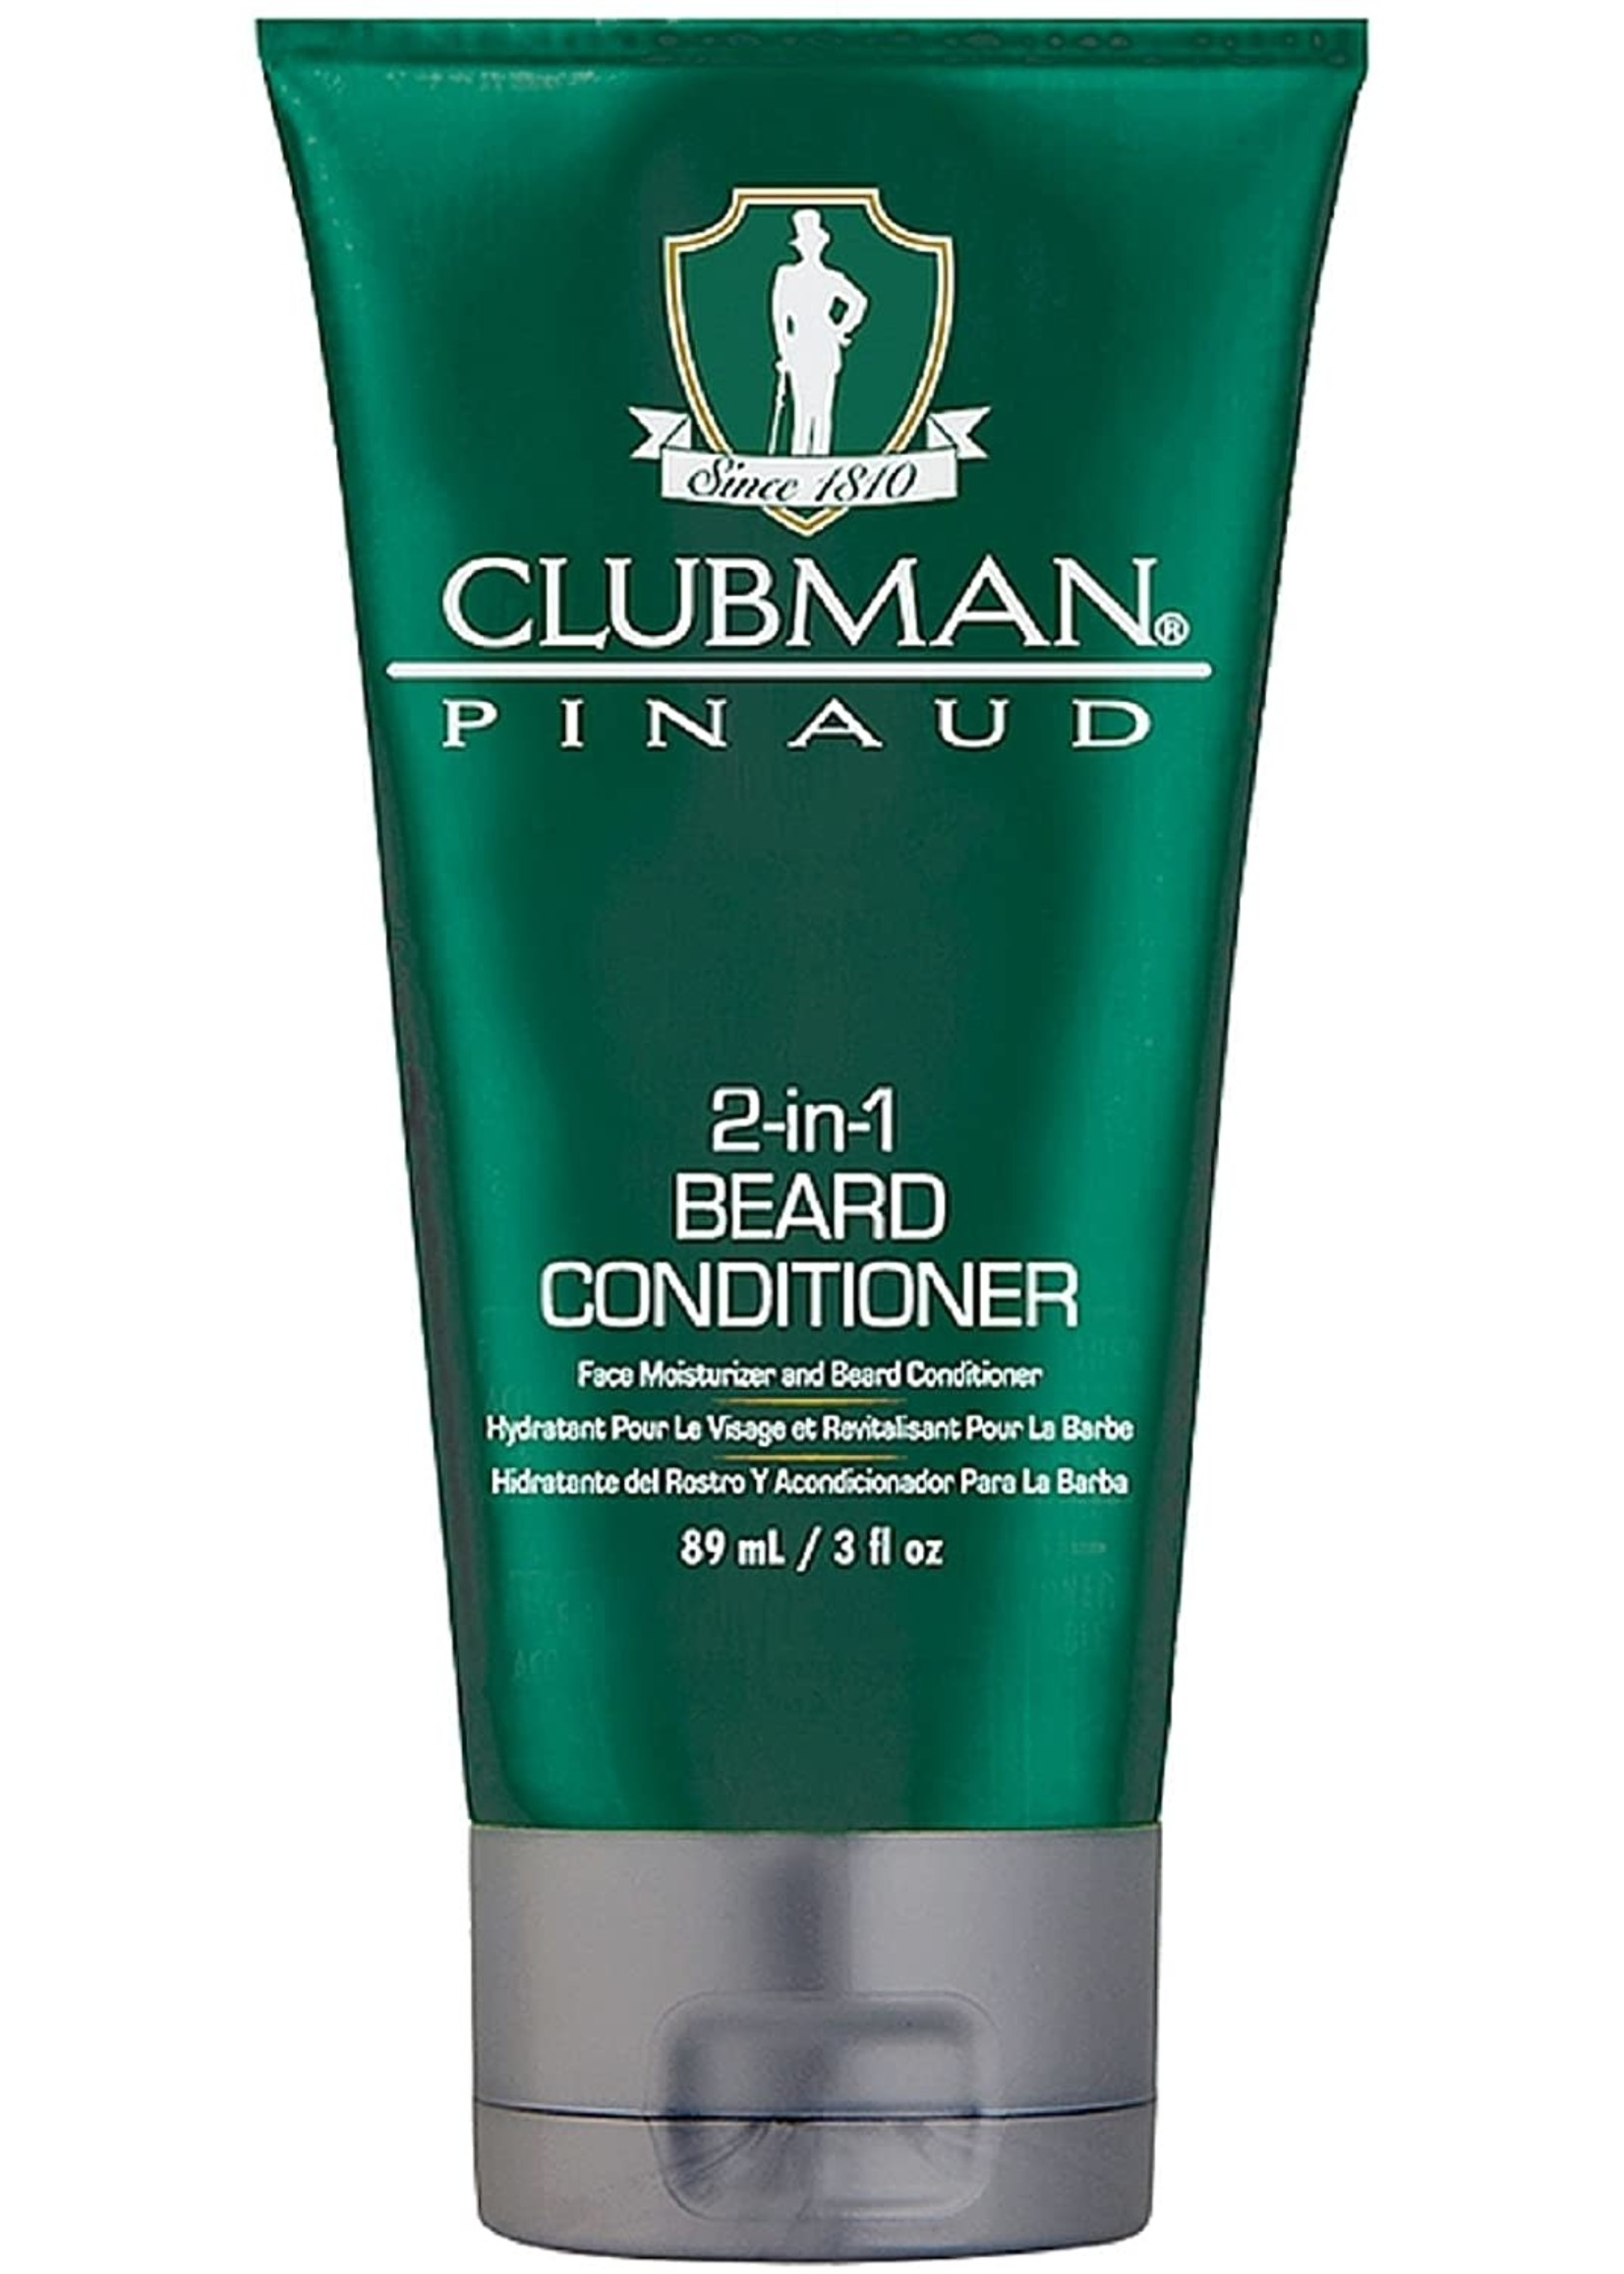 CLUBMAN PINAUD BEARD 2 IN 1 CONDITIONER